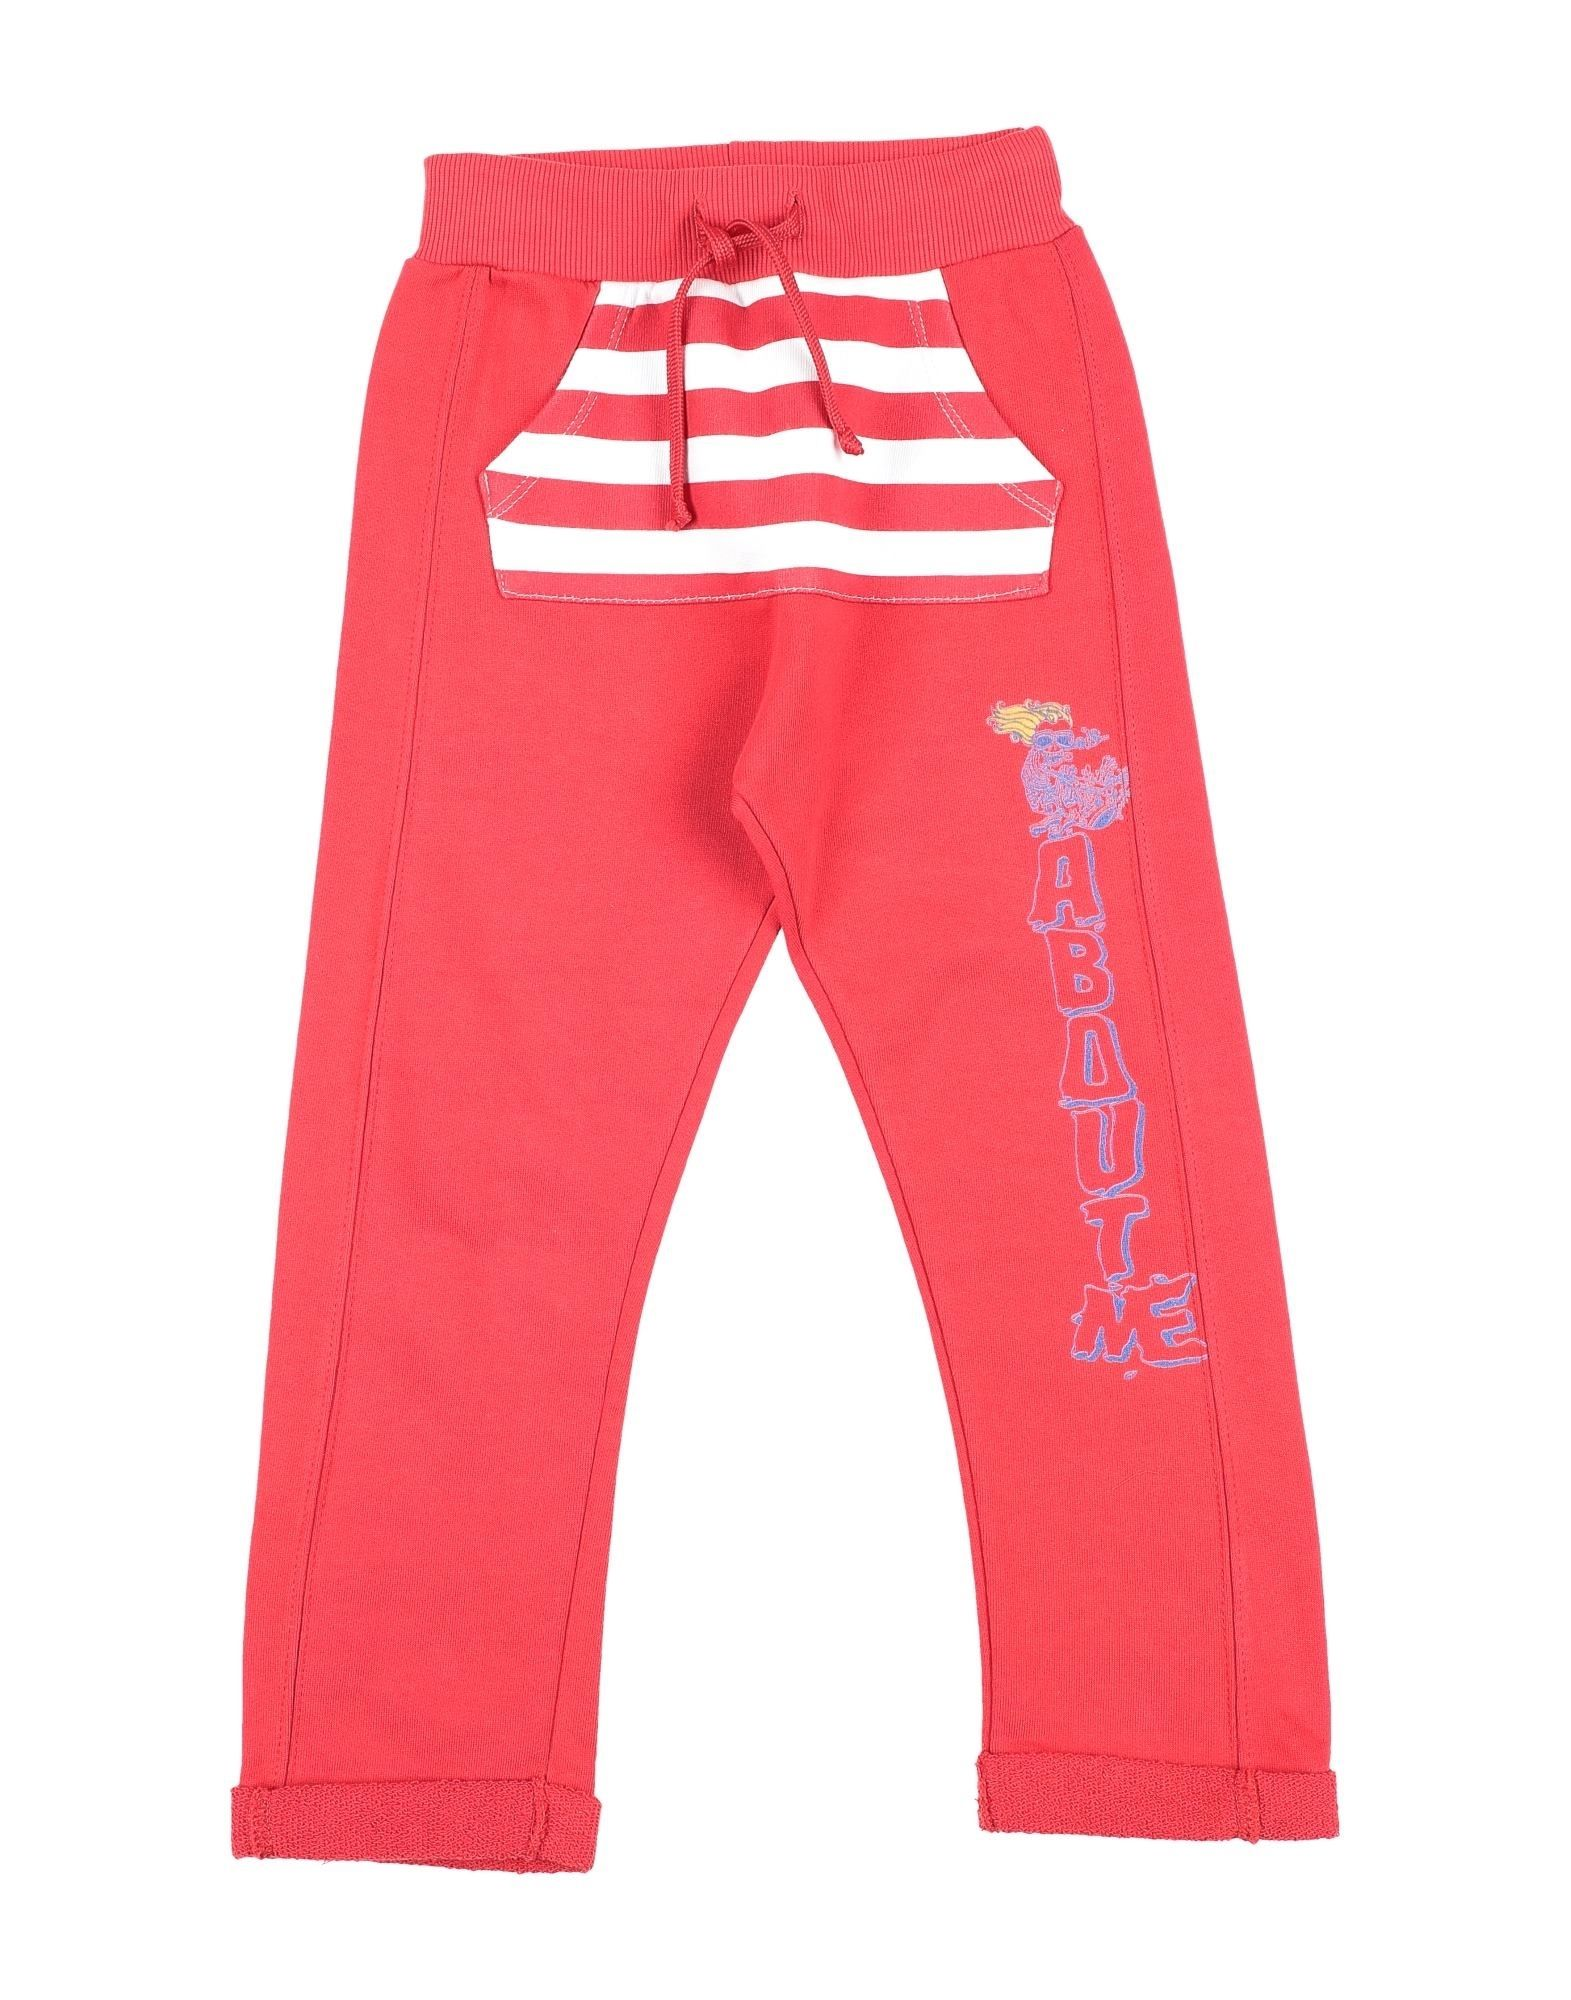 About Me Handmade Kids' Casual Pants In Red